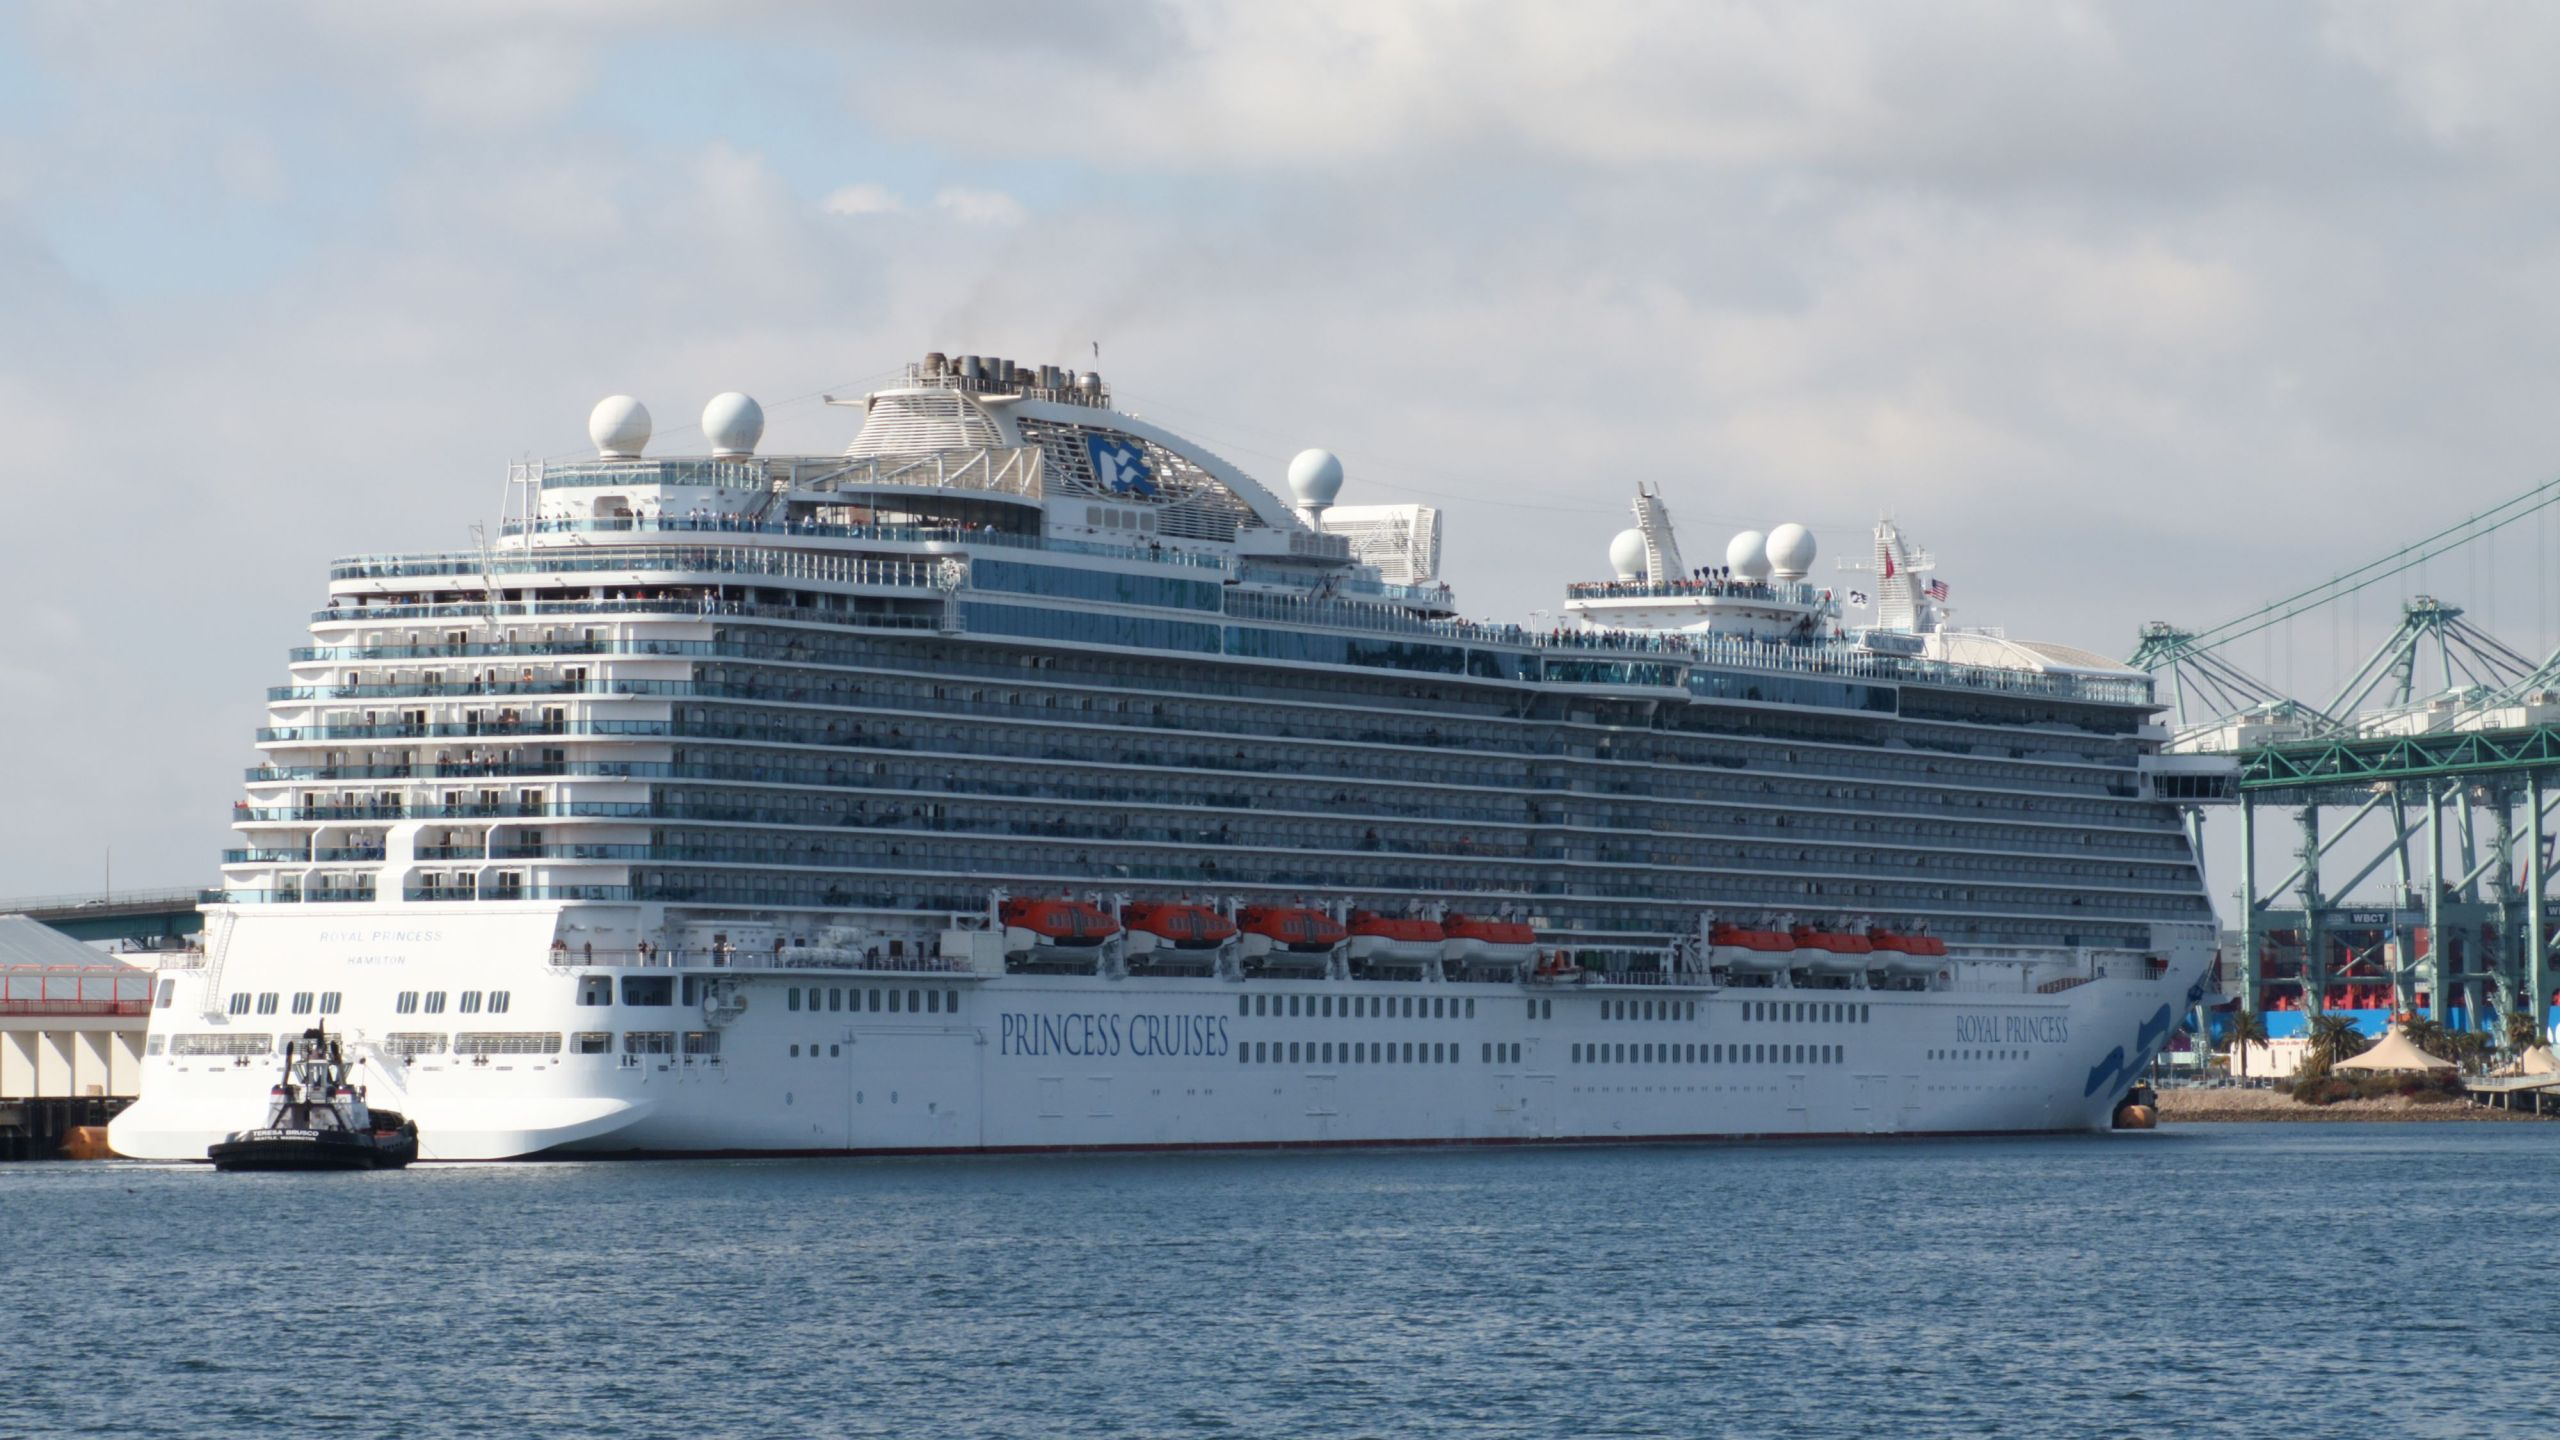 The Royal Princess ship, of the Princess Cruise line, is seen in the Port of Los Angeles World Cruise Center in San Pedro, California on April 20, 2019. (Daniel Slim/AFP via Getty Images)